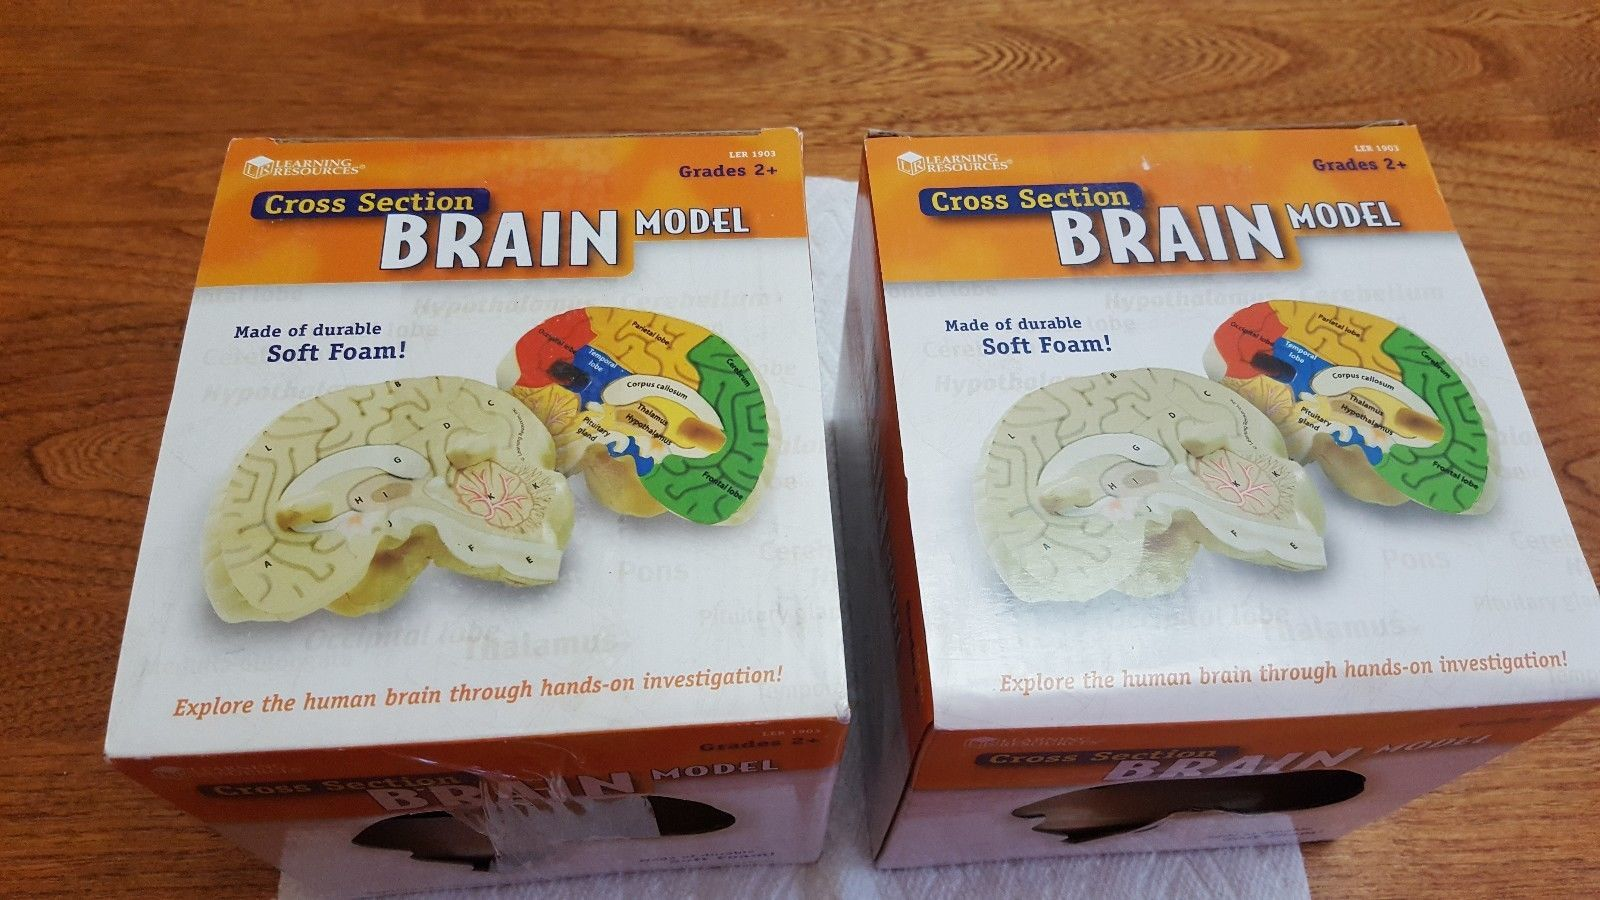 Cross Section Brain Model Anatomy Learning Tools Kids Toys ...